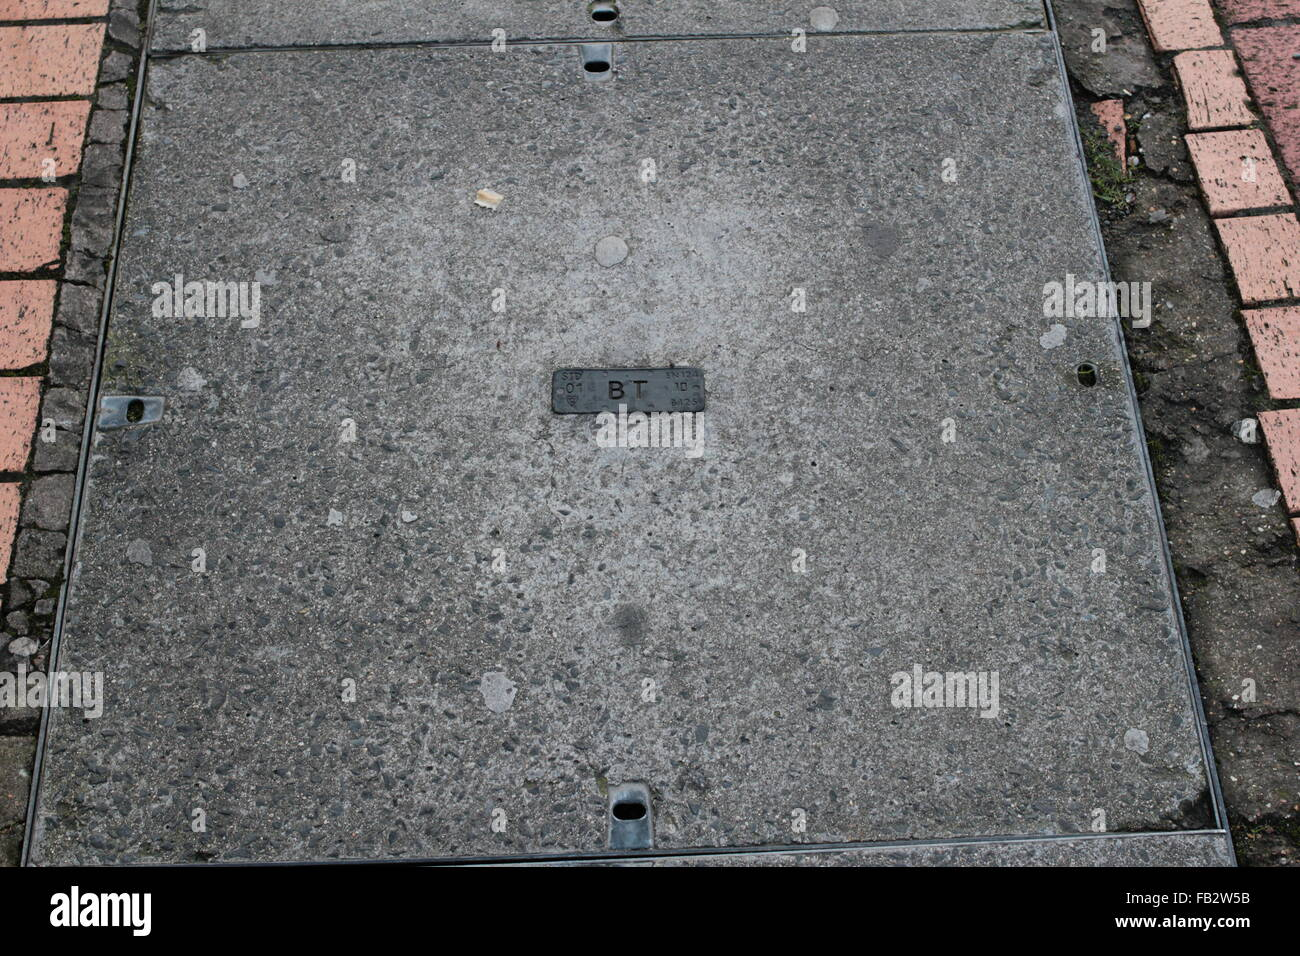 Telephone company access cover - Stock Image